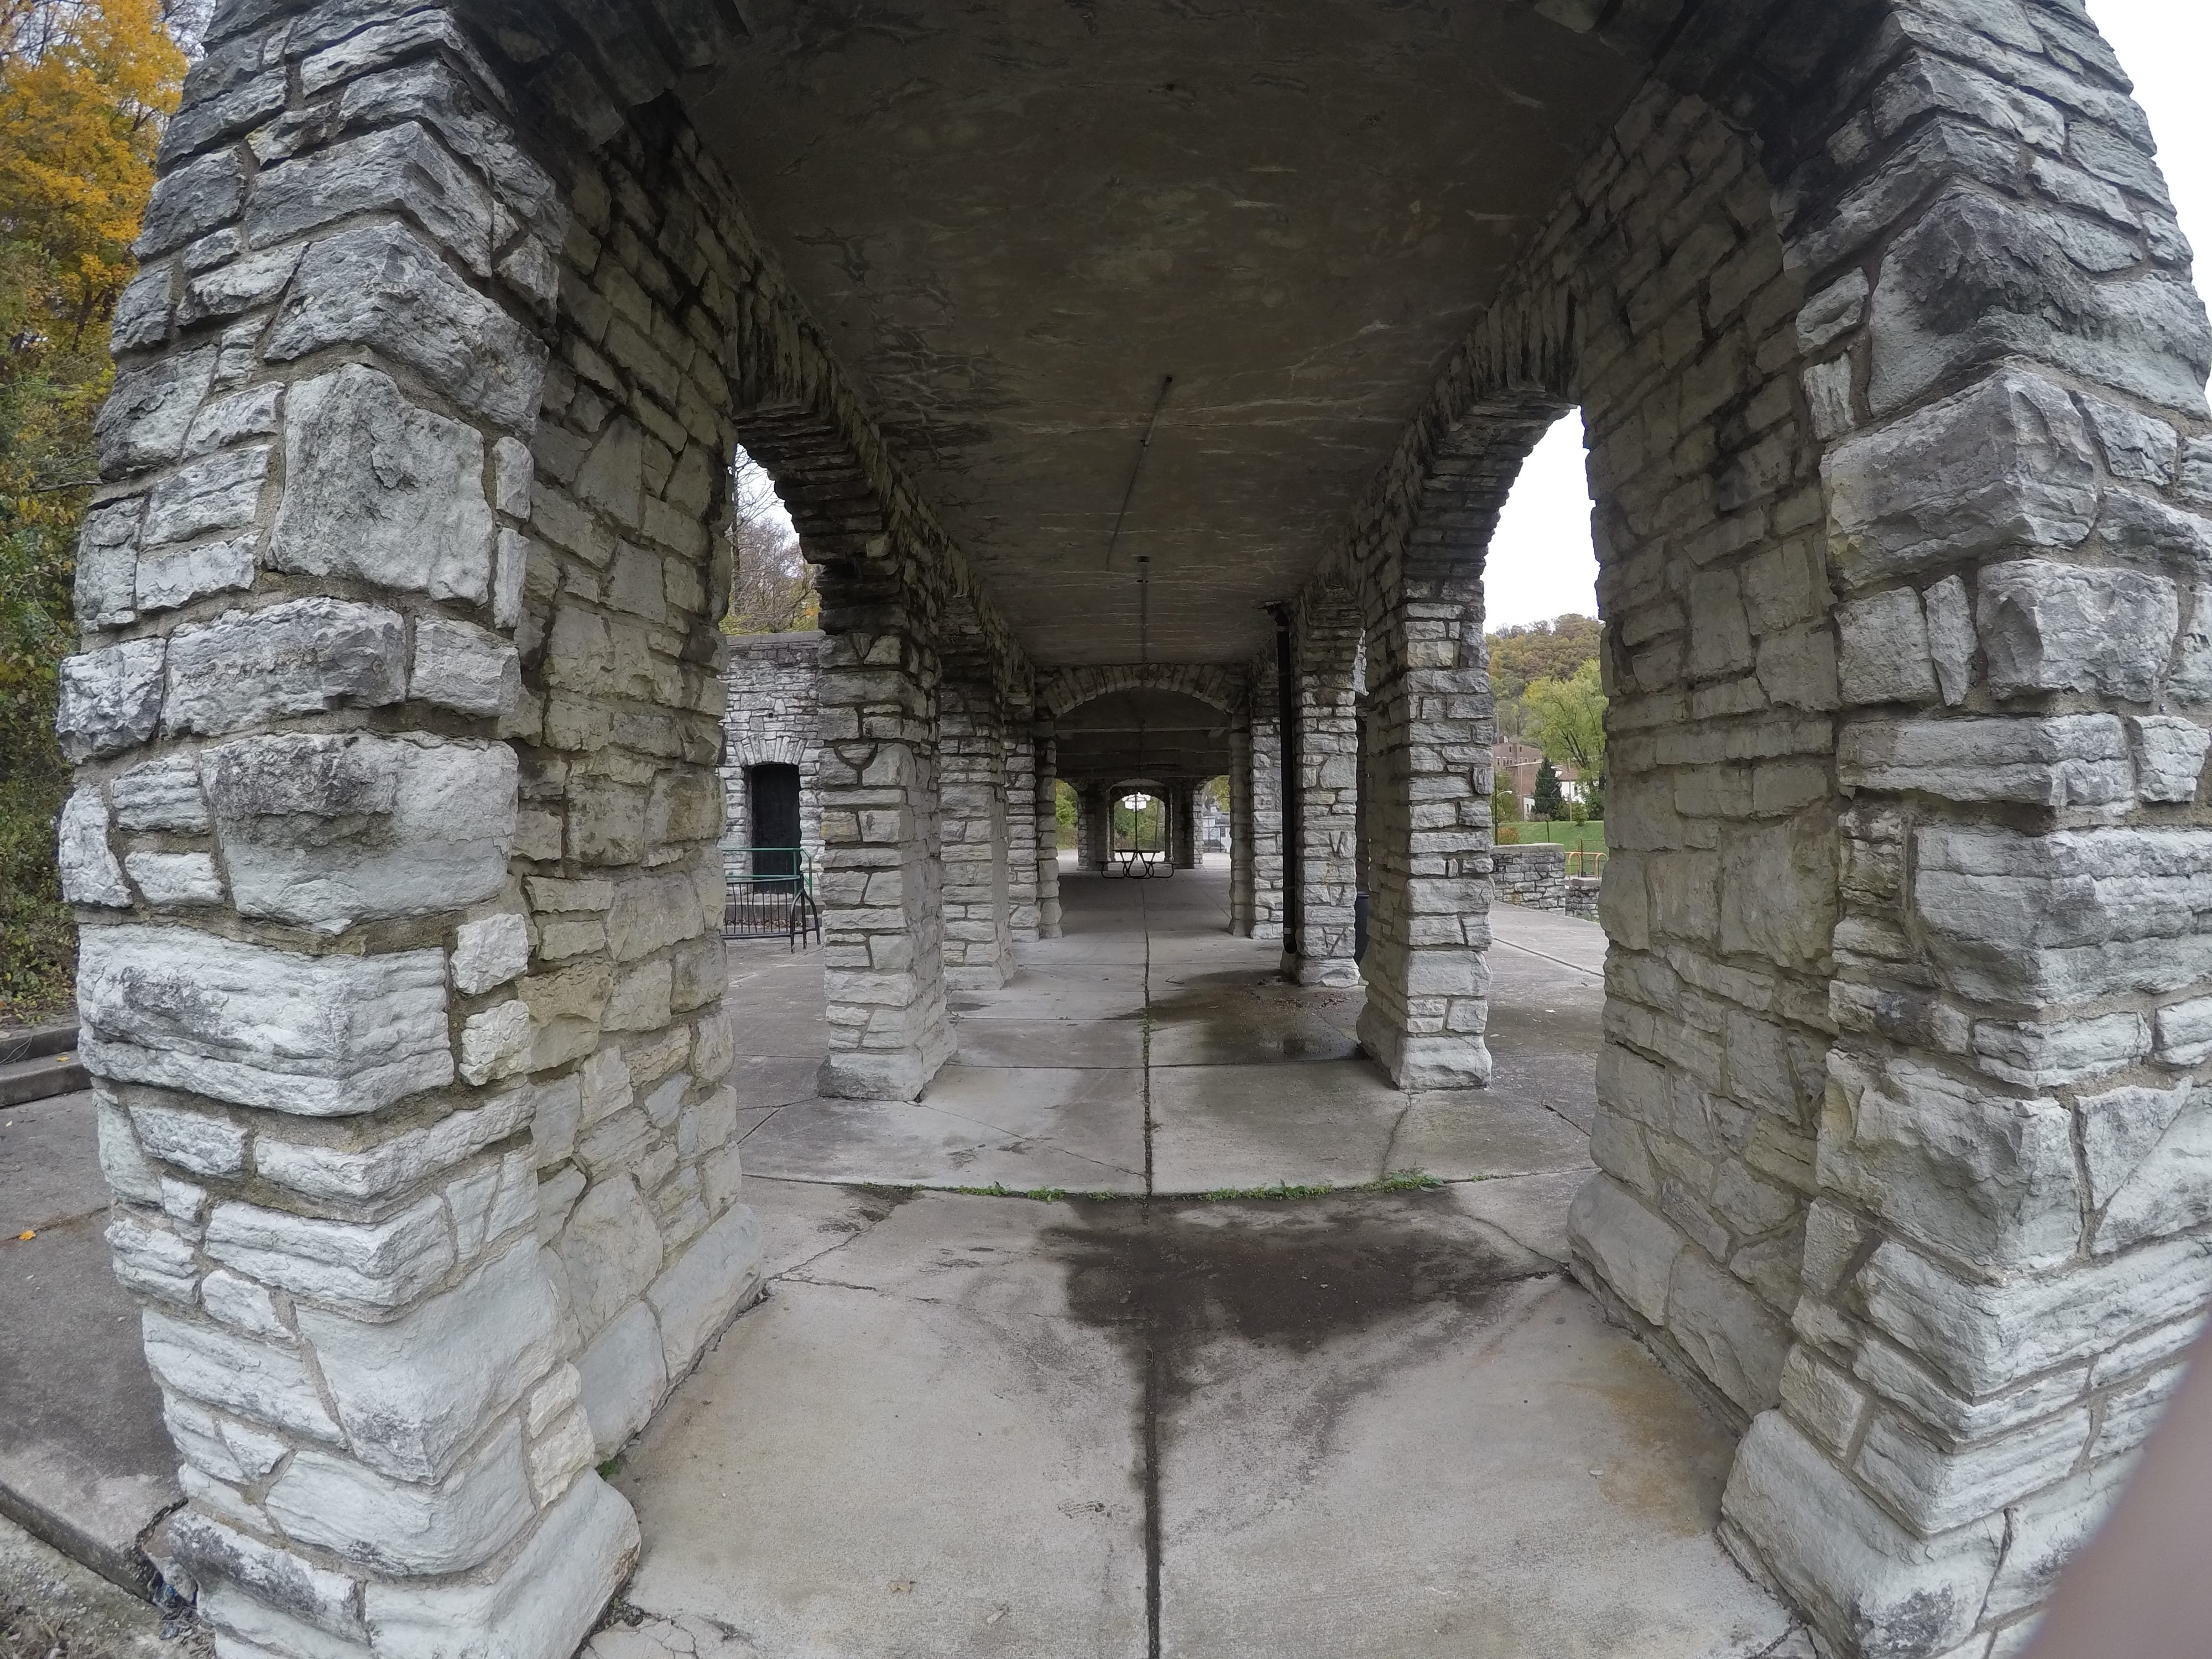 Patrons of the swimming pool would have entered the structure through these walkways. A sign on the eastern face of the structure warns against entering the building due to risk for falling concrete